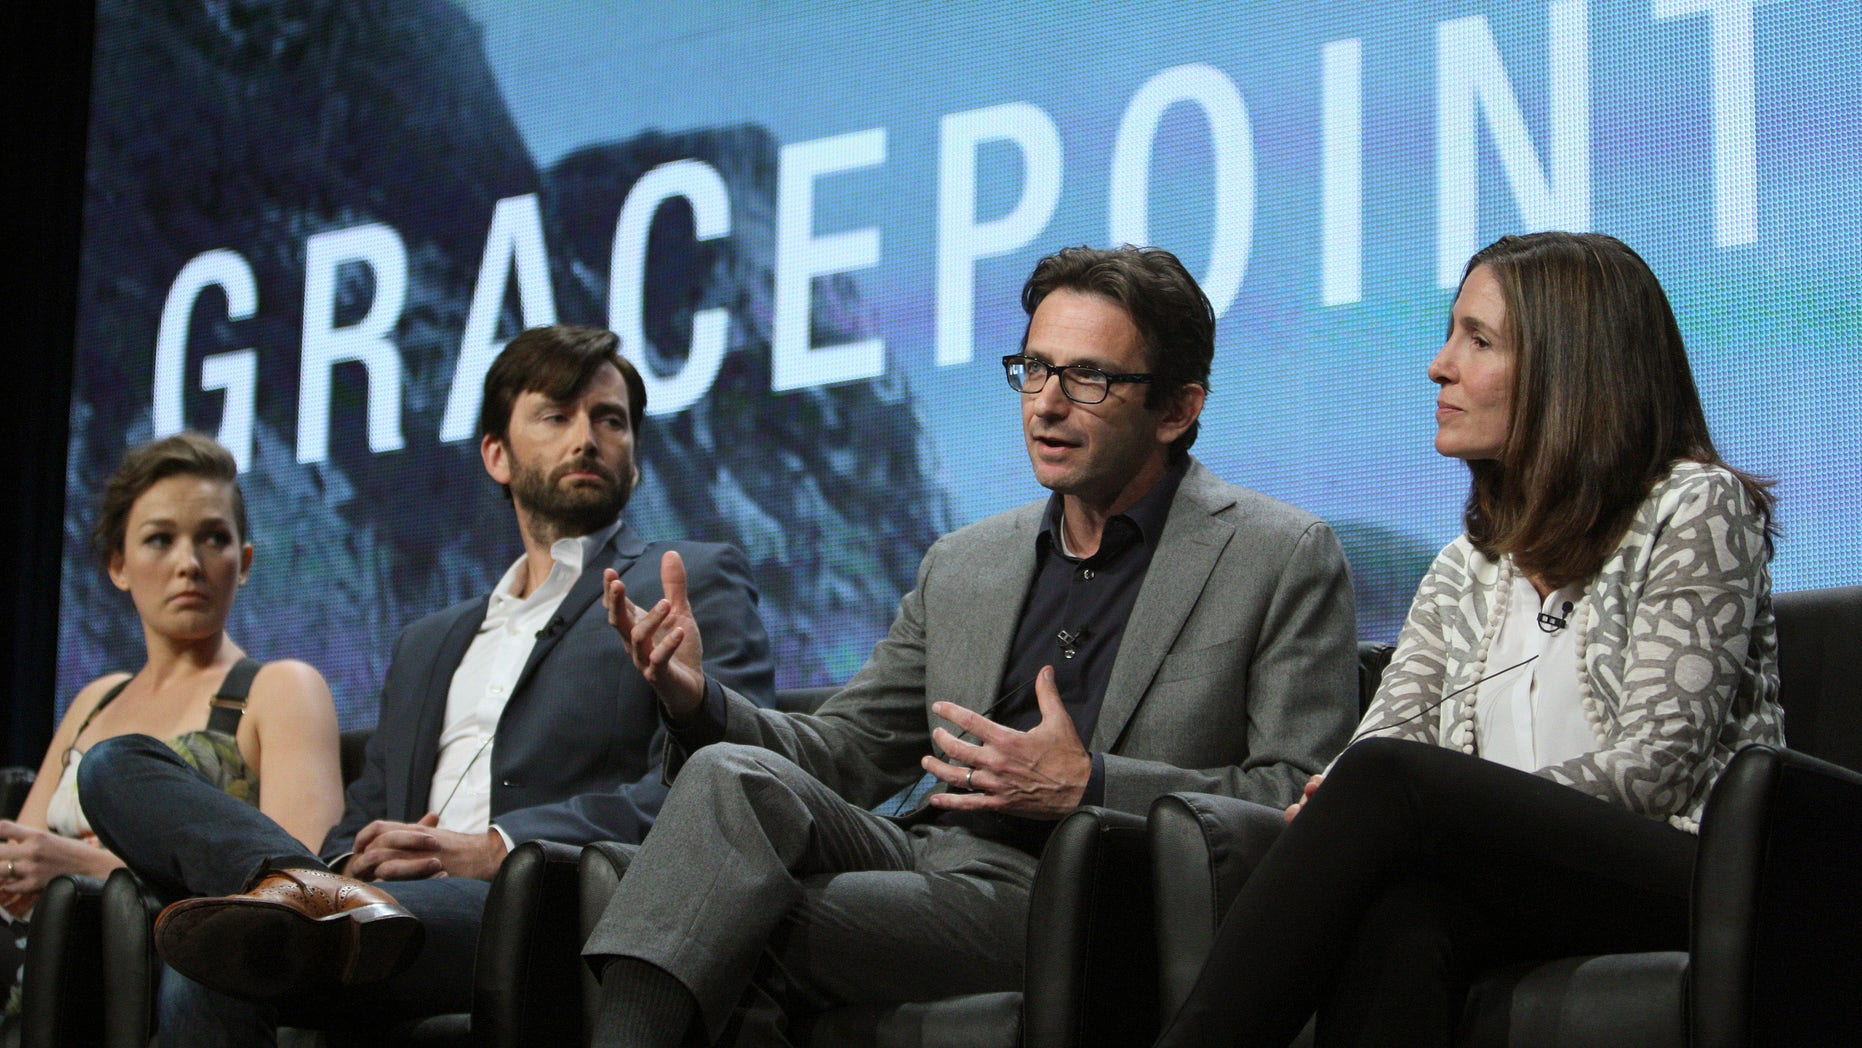 """(L-R) Actors Virginia Kull and David Tennant, and executive producers Dan Futterman and Carolyn Bernstein of the series """"Gracepoint"""" attend the 2014 TCA Summer Press Tour at the Beverly Hilton hotel in Beverly Hills, California, July 20, 2014."""